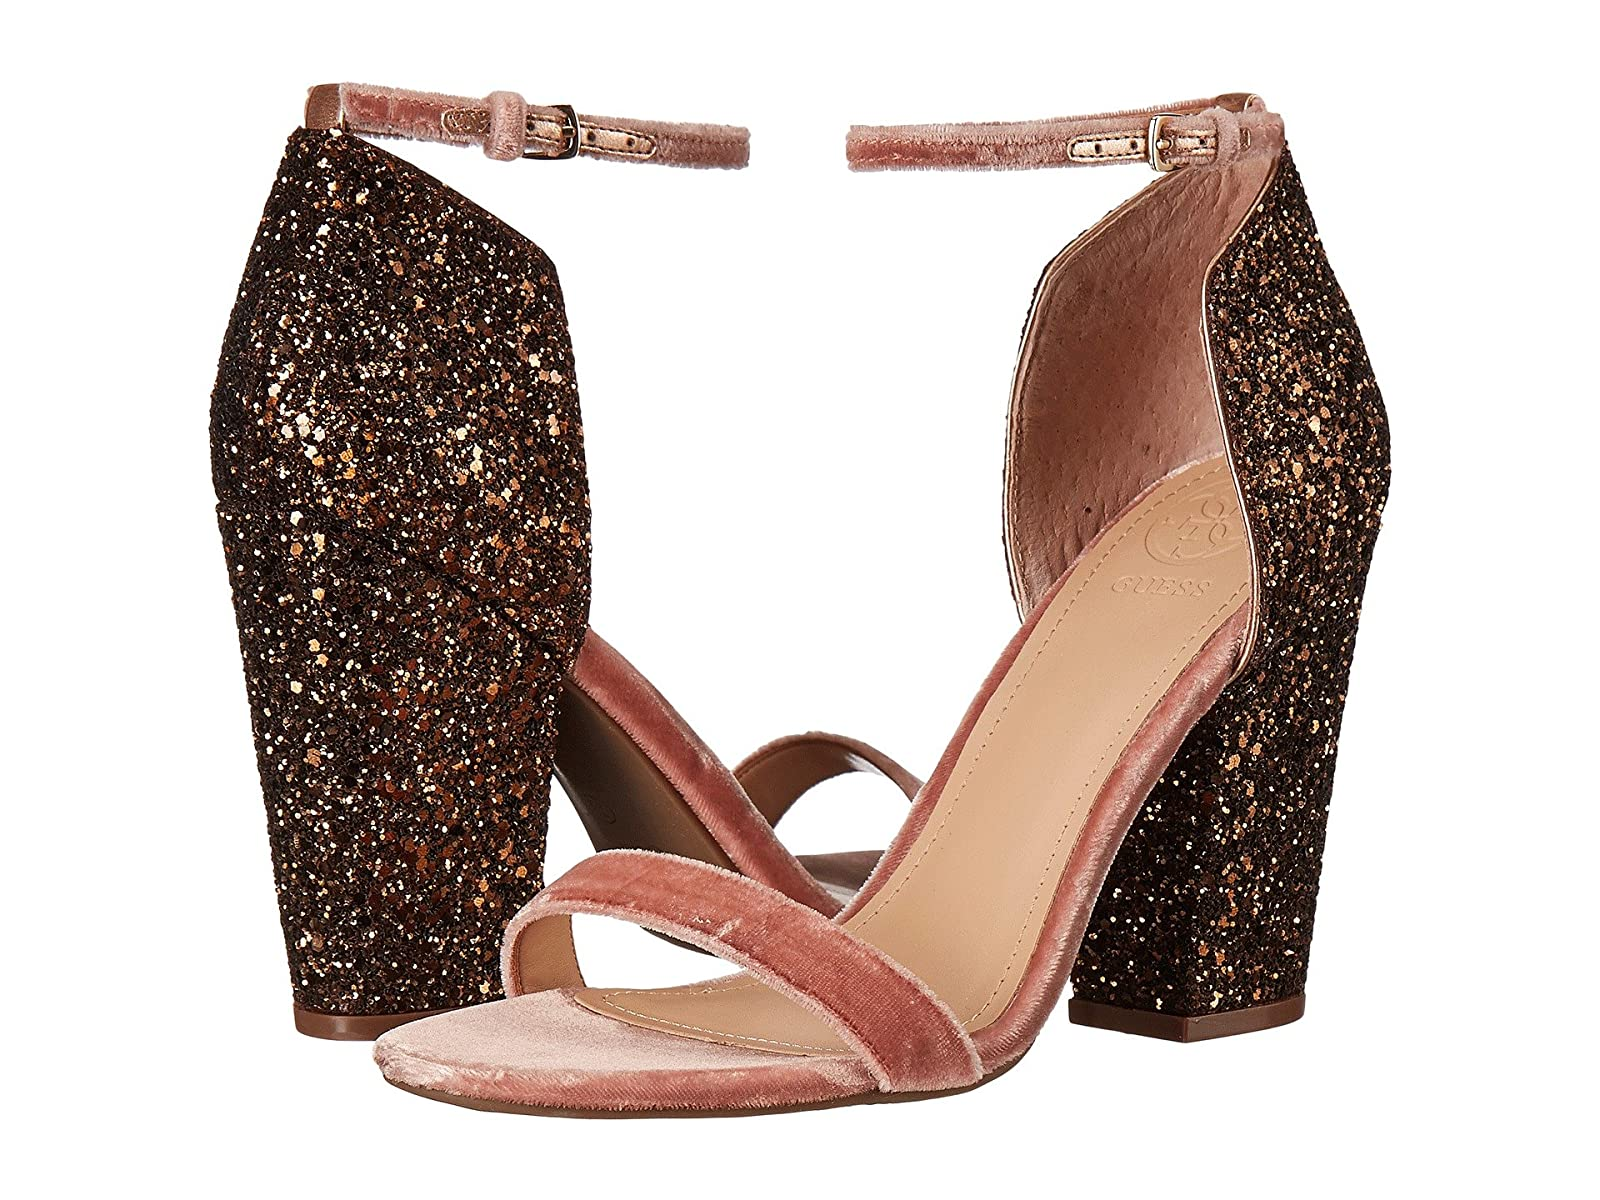 GUESS BambamCheap and distinctive eye-catching shoes